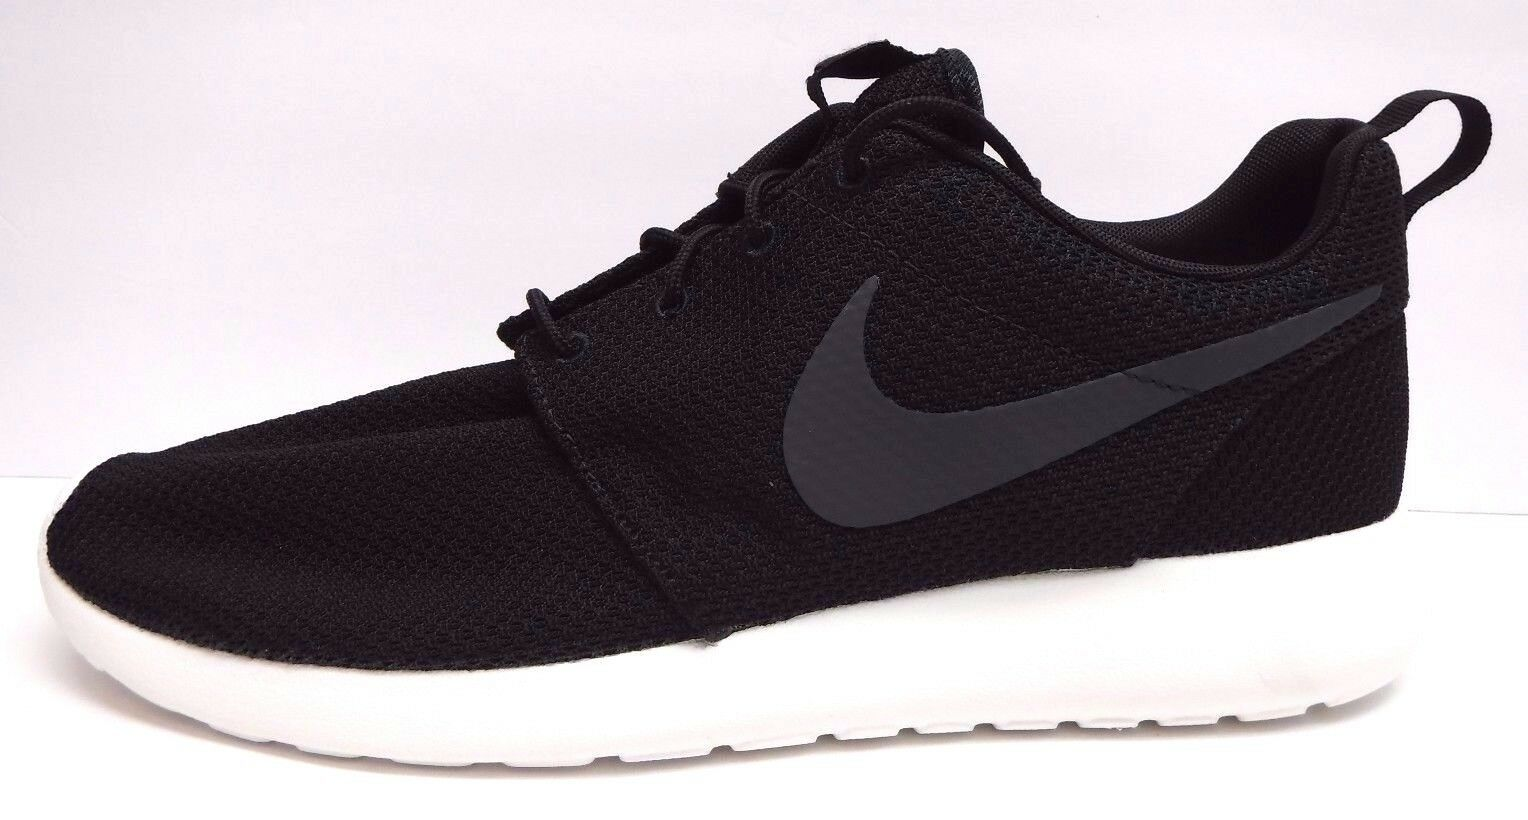 Nike Size 12 Black Shoes Running Sneakers New Mens Shoes Black 33187d